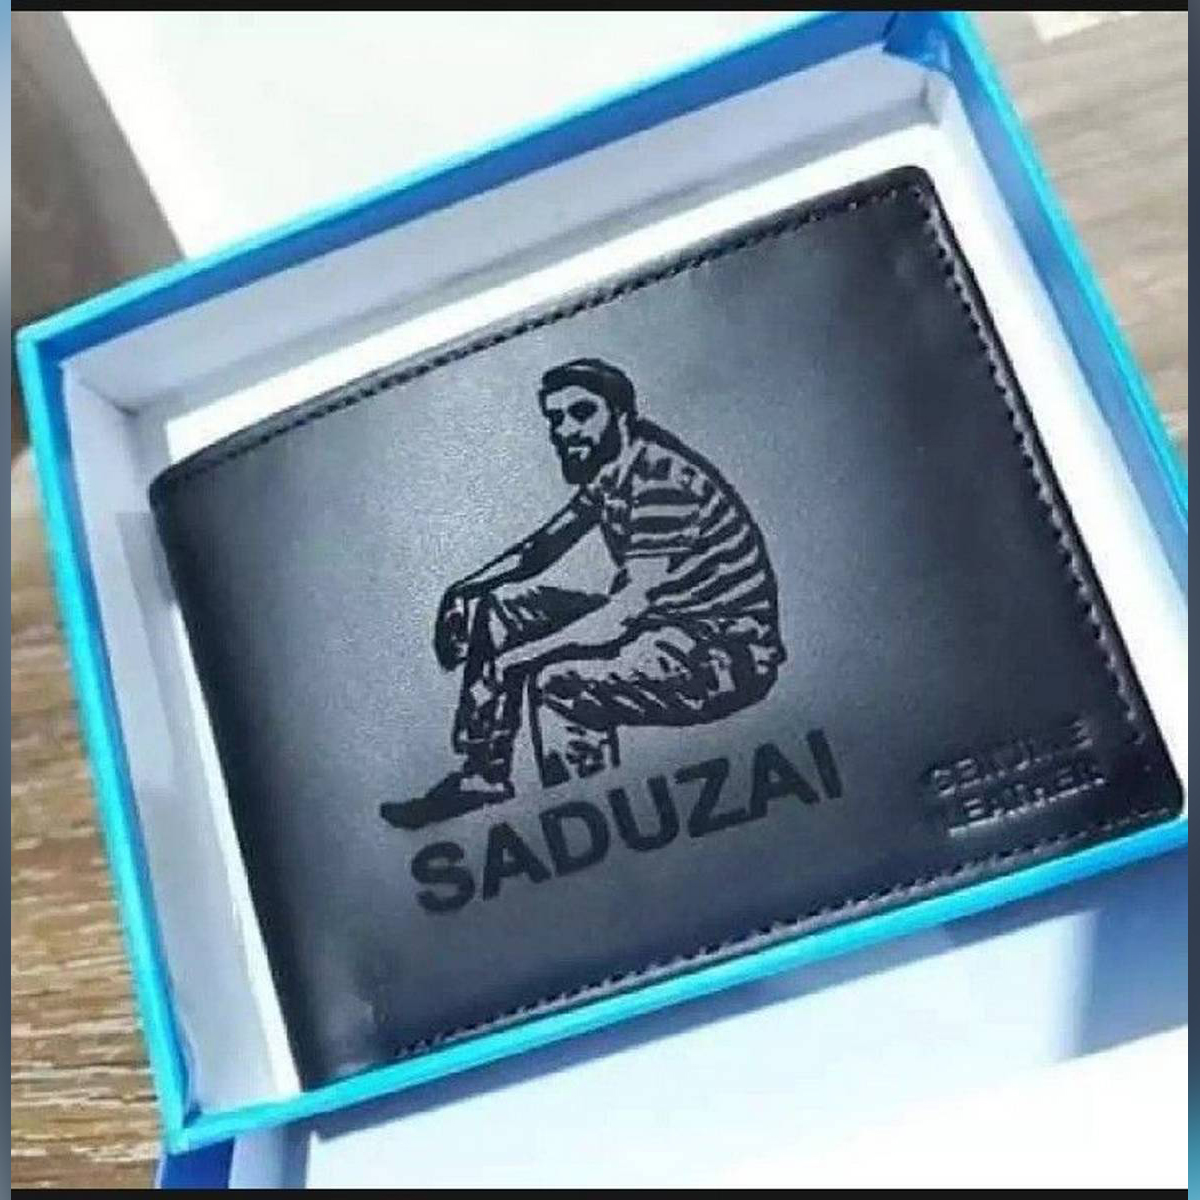 2 in 1 Combo Customize Your Photo Engraved Wallet And keychain Set For Men